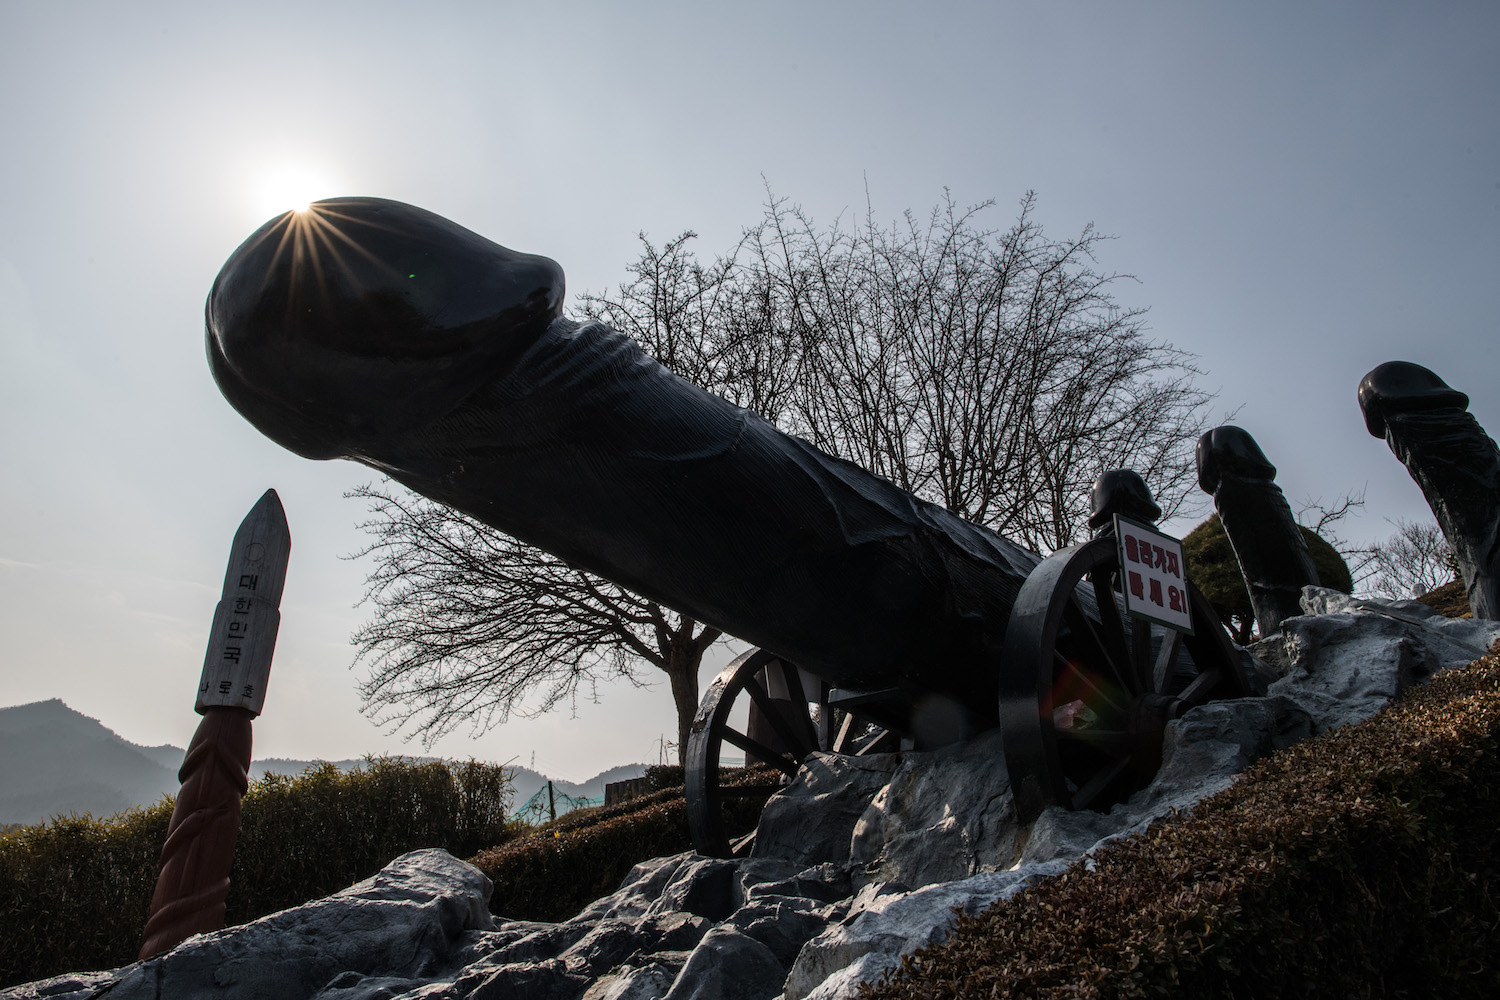 Phallic statues are displayed in Haesindang Park, informally known as 'Penis Park', on in Samcheok, South Korea Feb. 23. (Photo by Carl Court/Getty Images)